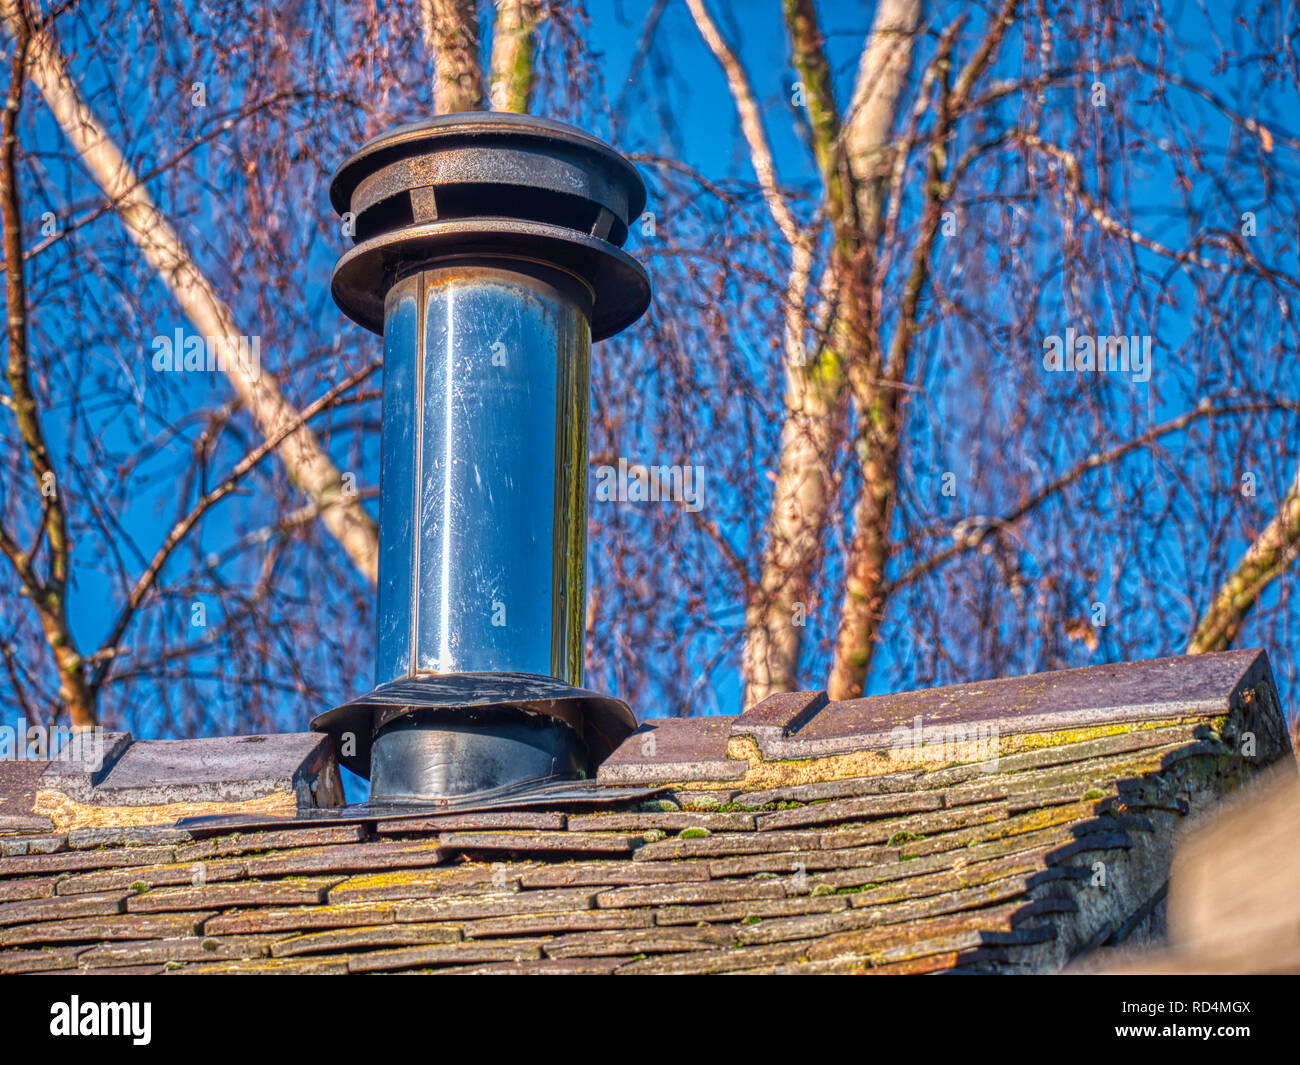 Wirksworth, UK. 17th Jan, 2019. UK Weather: An old log-burning stove warming a farm house on a cold January day, maybe under-threat from Michael Gove's Clean Air Strategy, Wirksworth, Derbyshire Dales Credit: Doug Blane/Alamy Live News - Stock Image